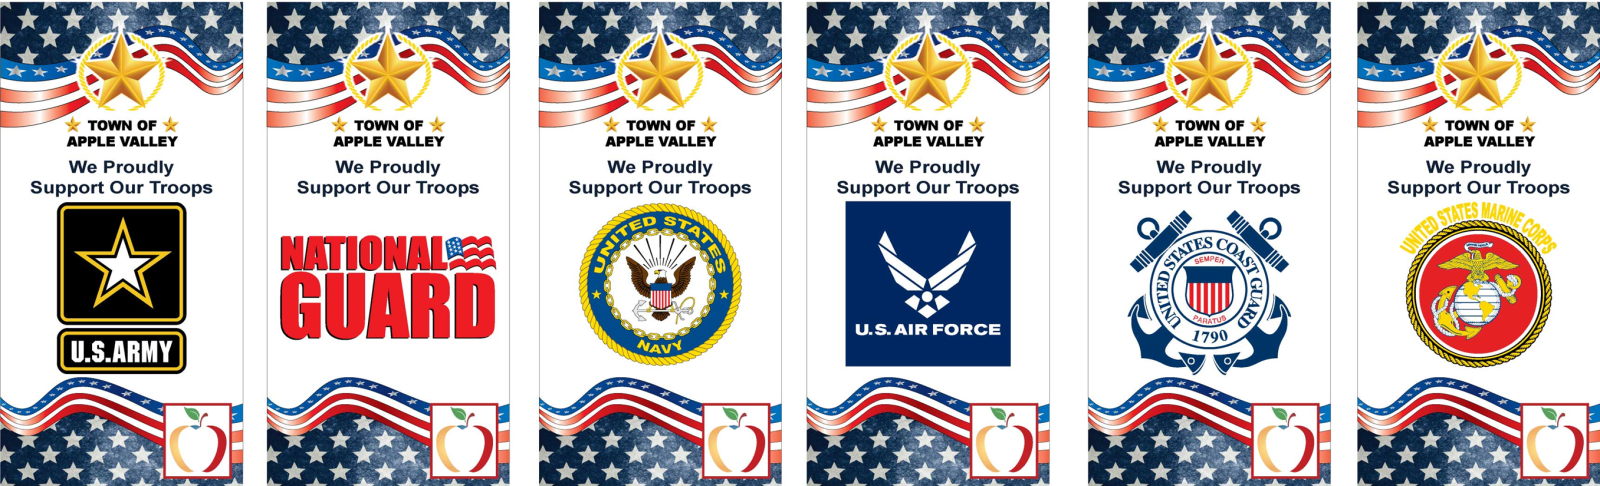 military banner recognition program apple valley ca